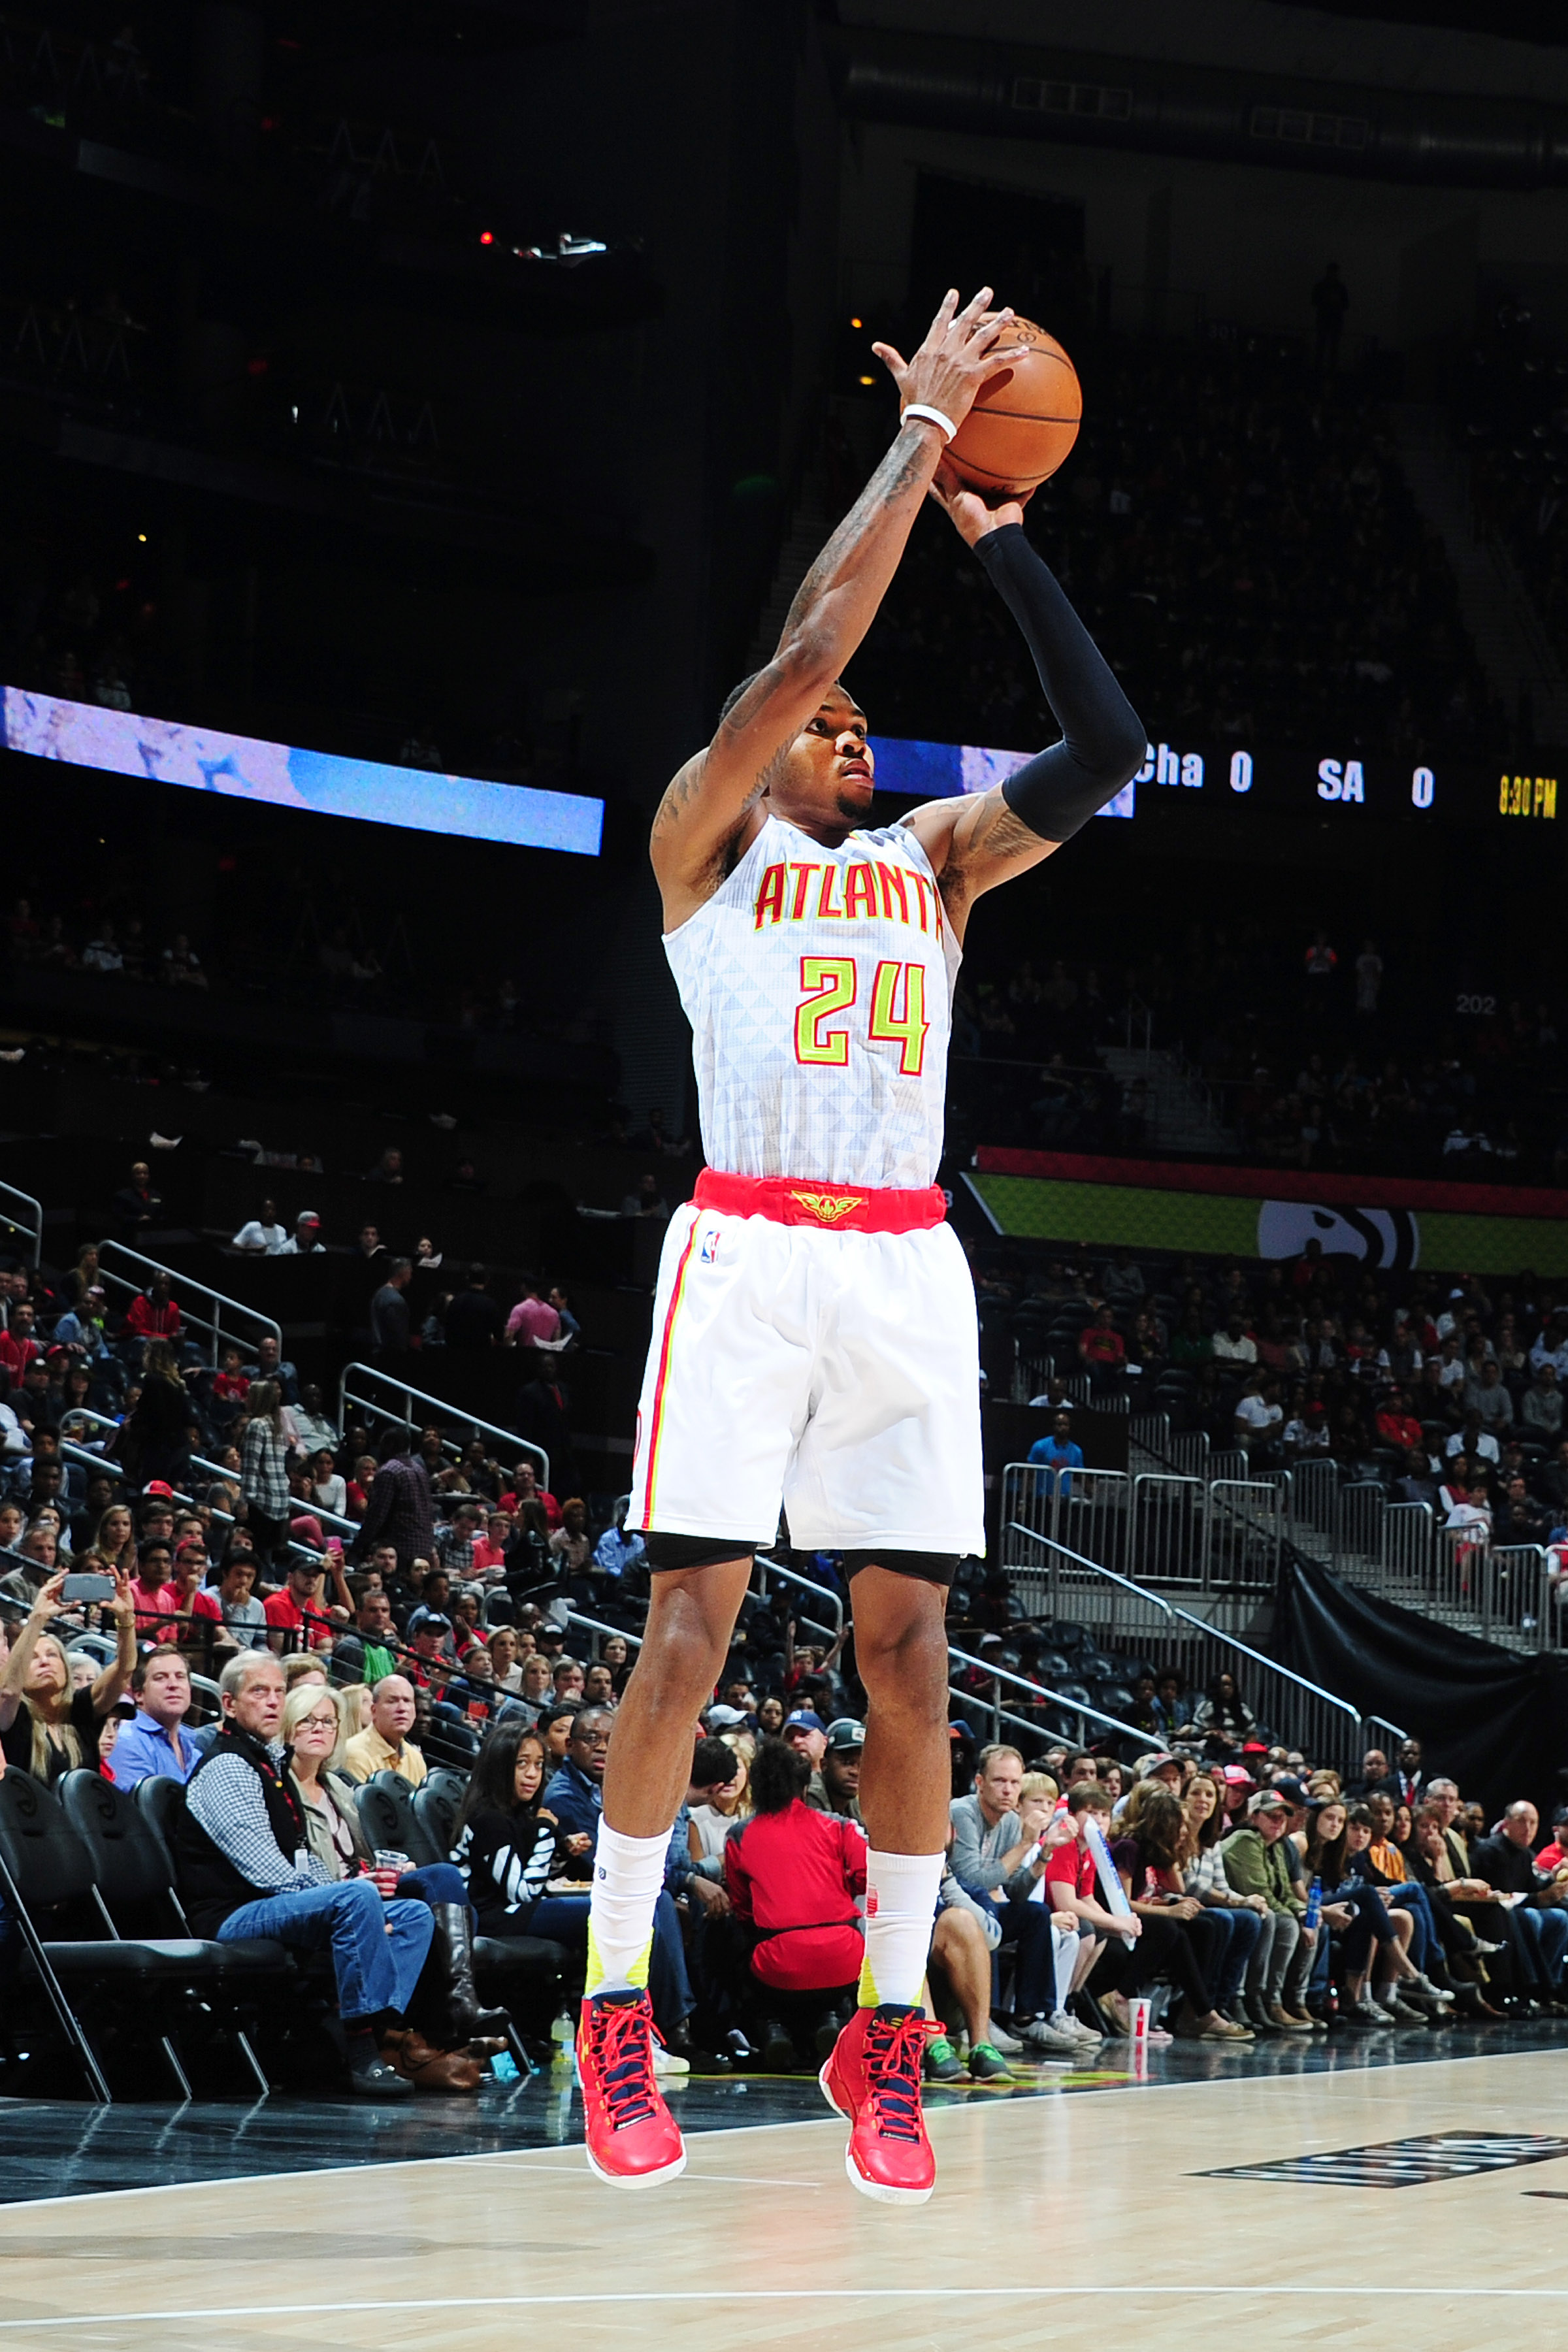 ATLANTA, GA - NOVEMBER 7: Kent Bazemore #24 of the Atlanta Hawks shoots the ball against the Washington Wizards during the game on November 7, 2015 at Philips Arena in Atlanta, Georgia.  (Photo by Scott Cunningham/NBAE via Getty Images)